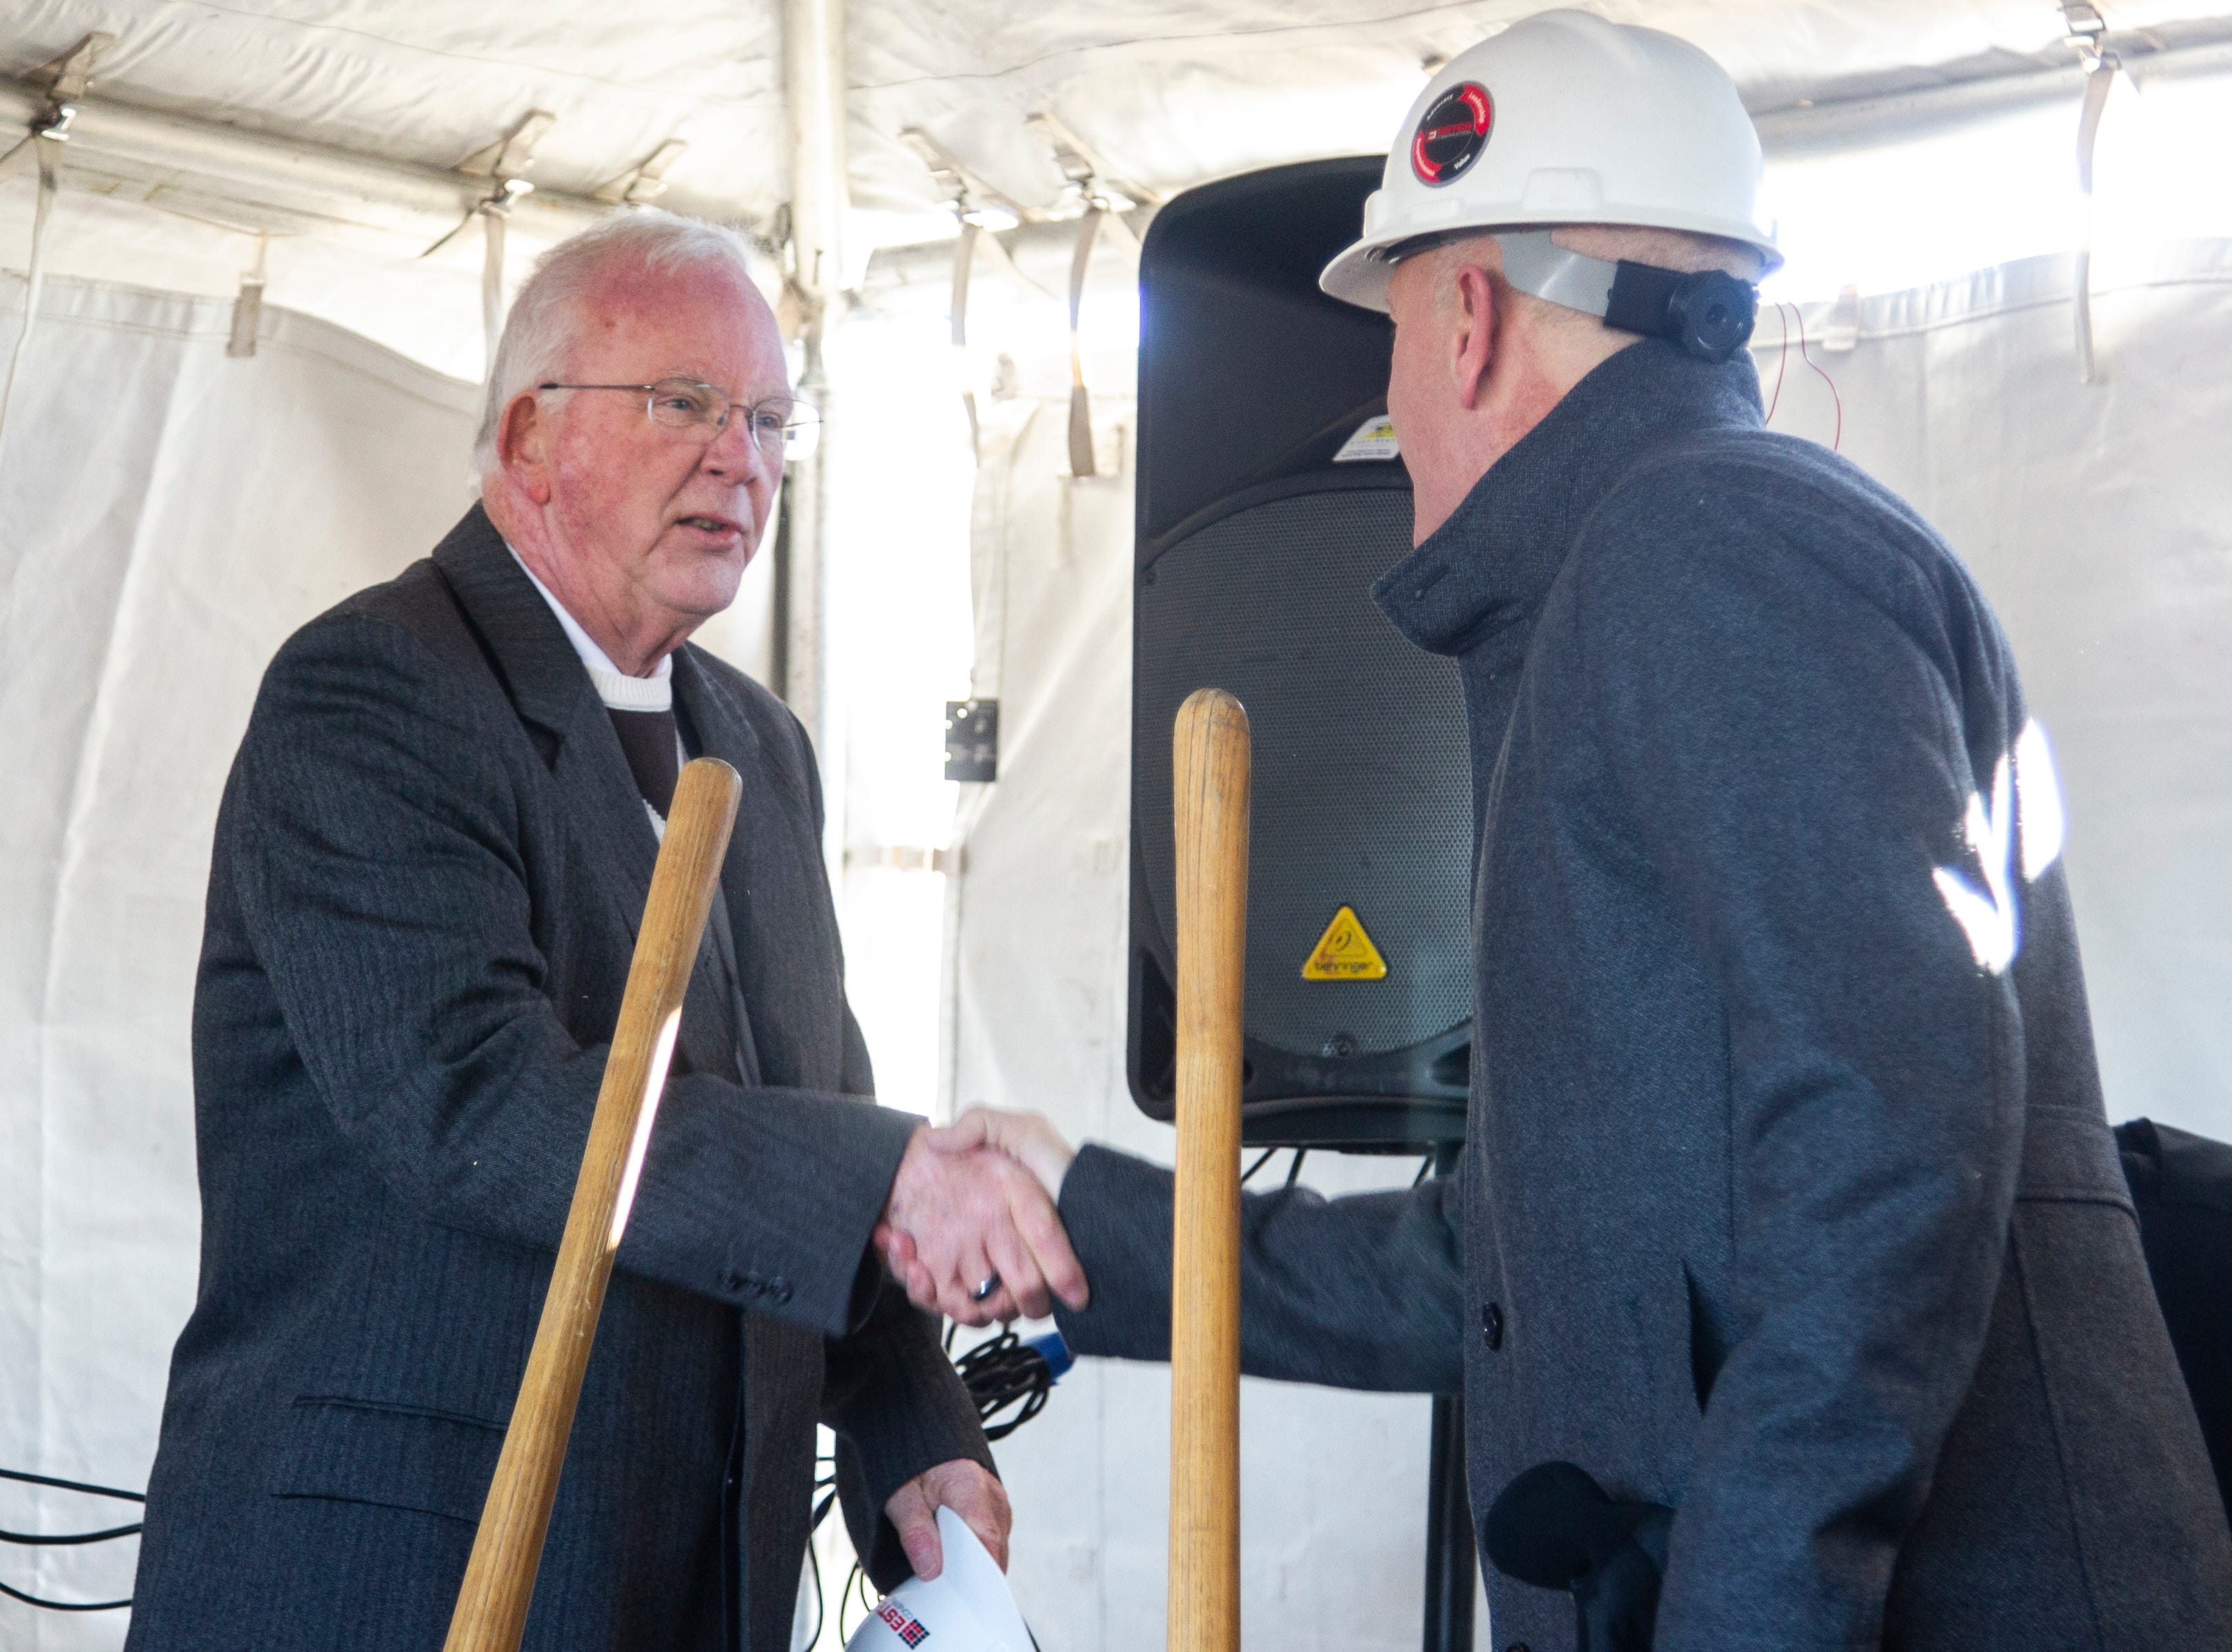 North Liberty Mayor Terry Donahue shakes hands with Estes Construction contractor Kent Pilcher during a groundbreaking event for a new Diventures store location on Thursday, Jan. 3, 2019, at the 1895 West Penn Street in North Liberty, Iowa.